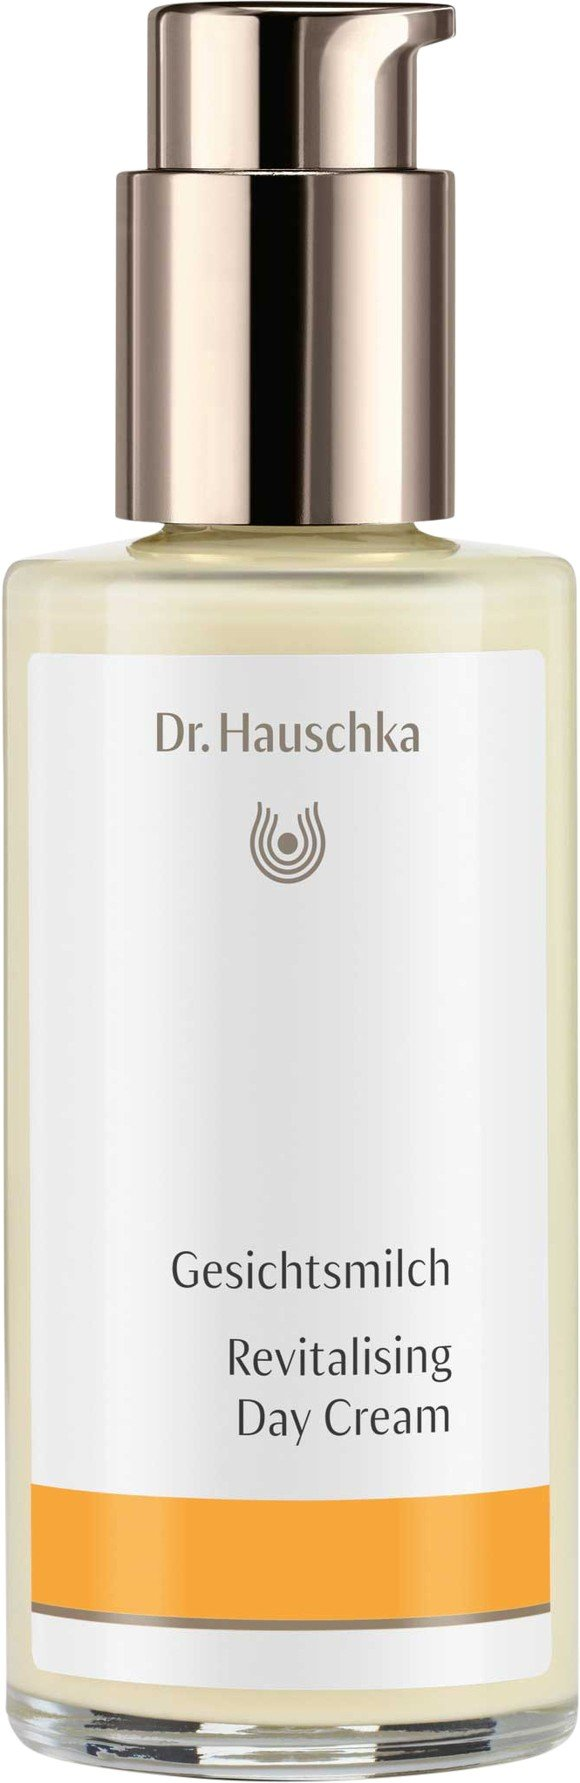 Dr. Hauschka - Revitalising Day Cream 100 ml